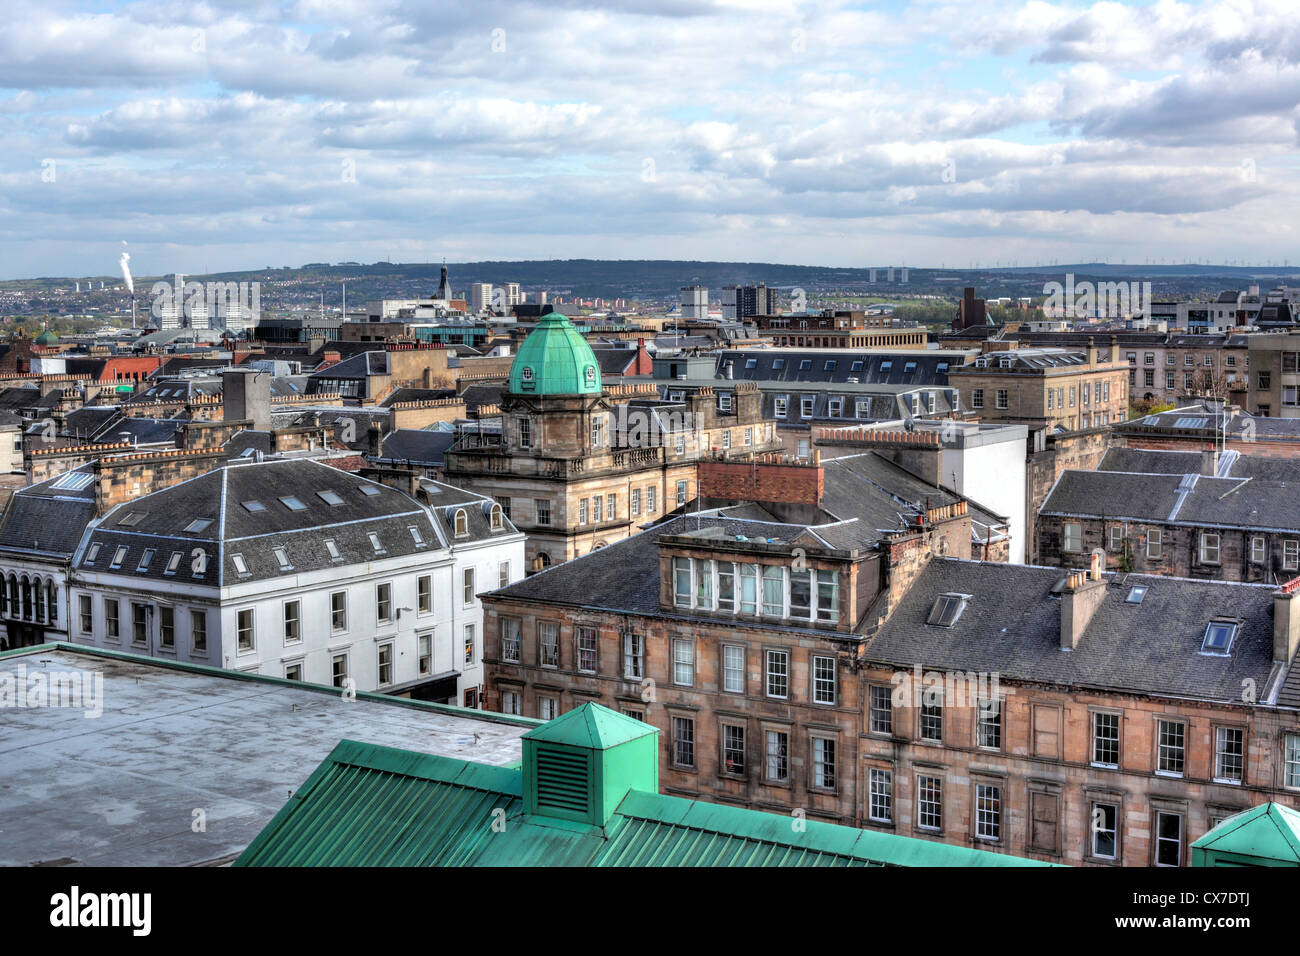 View of the city from Glasgow School of Art, Glasgow, Scotland, UK - Stock Image